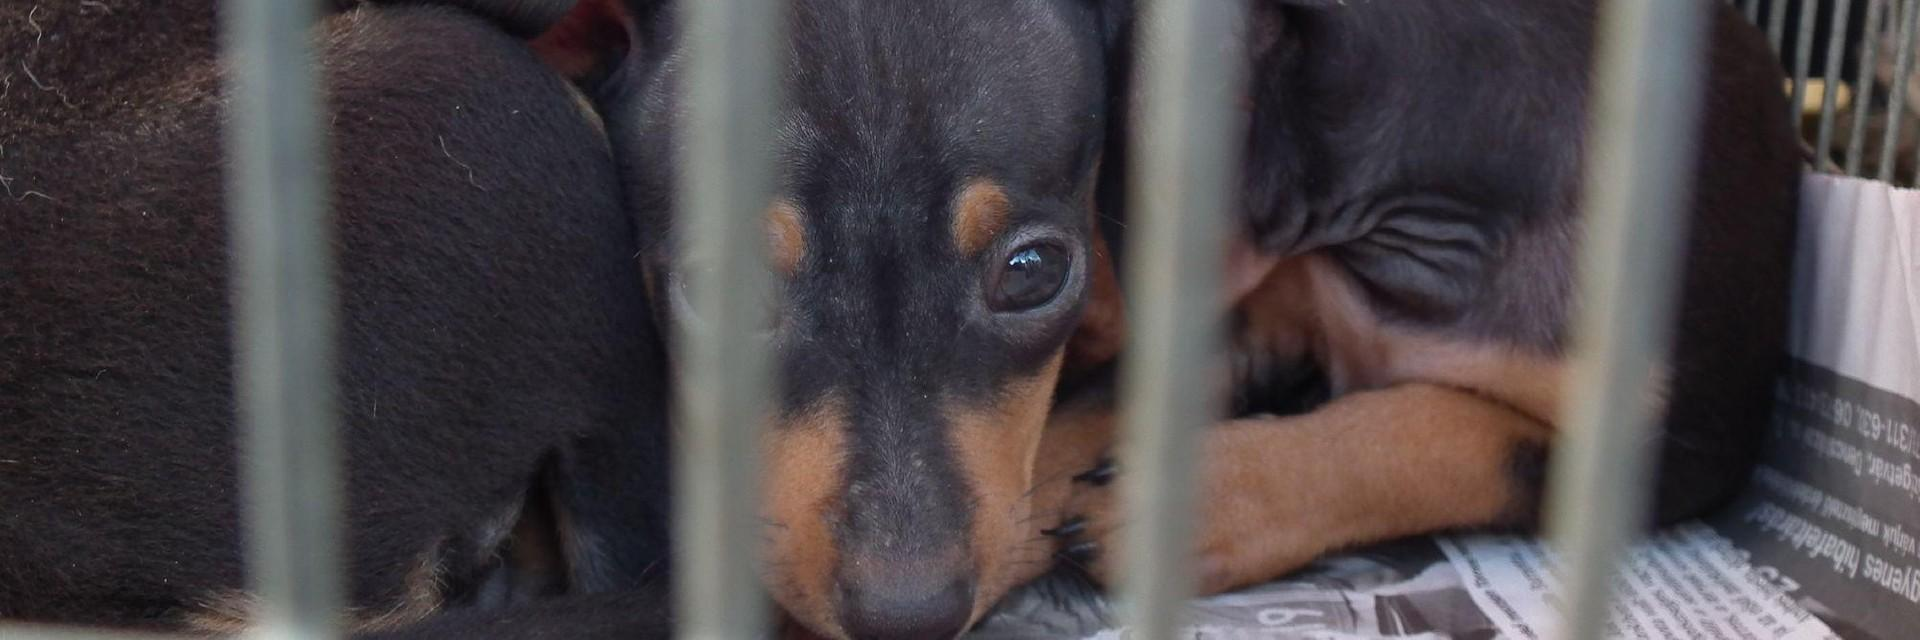 The illegeal puppy trade